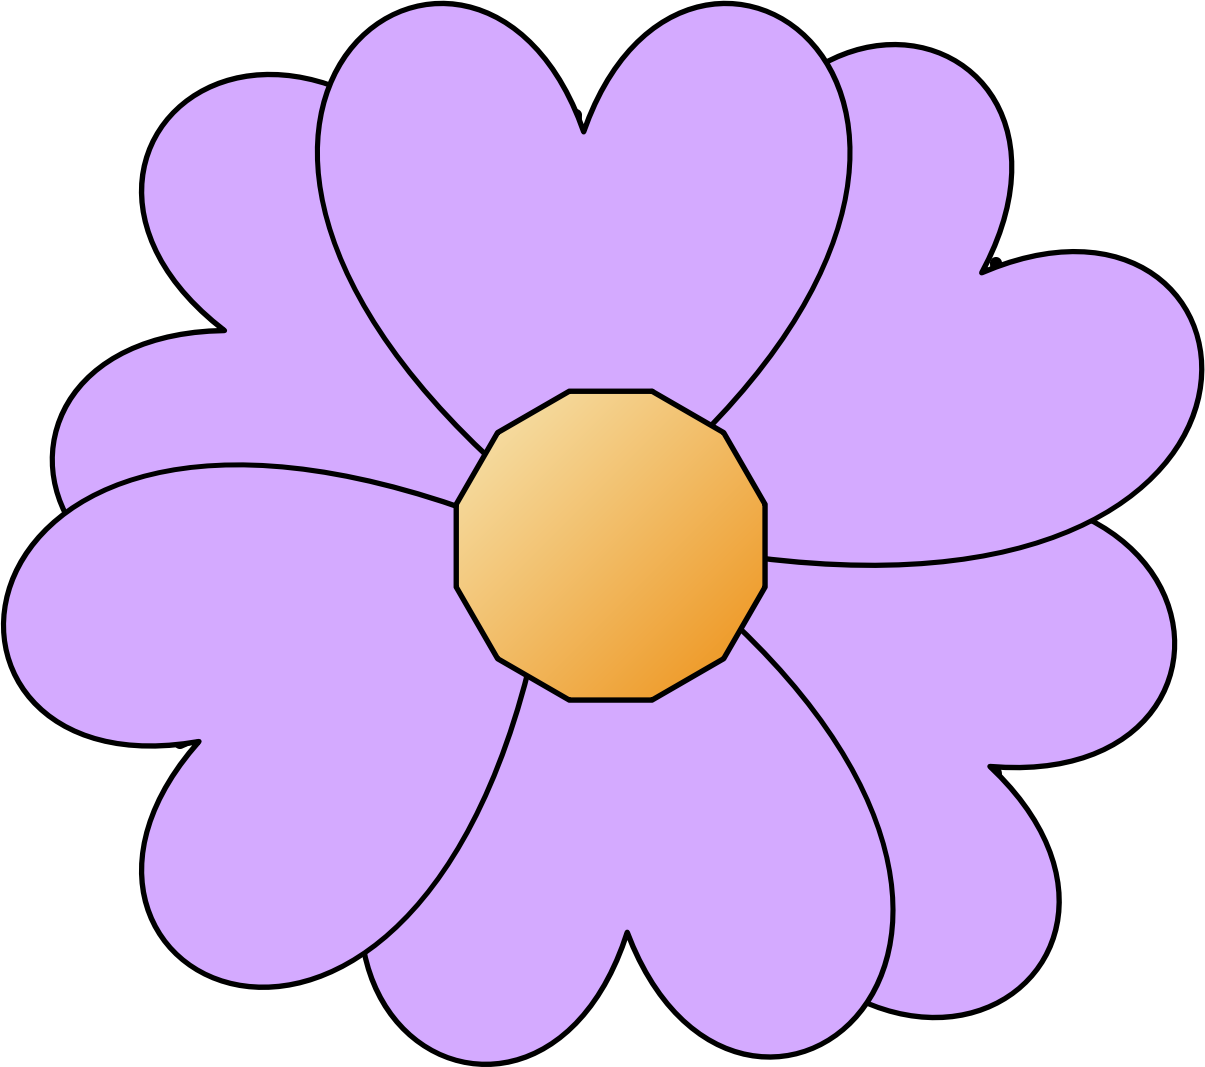 Simple flower png. Clipart purple big image